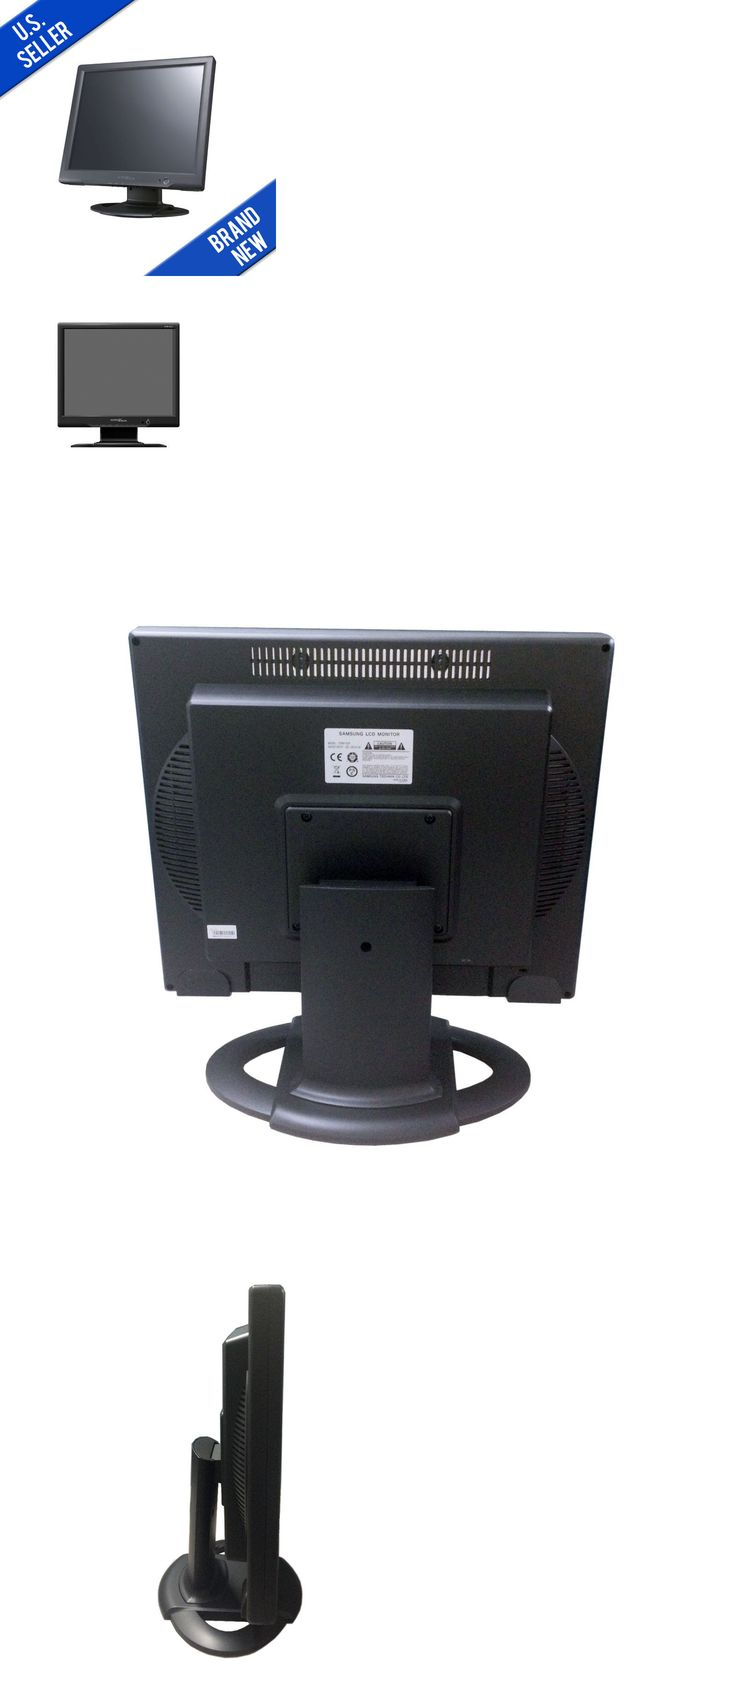 Surveillance Monitors Displays: Samsung Professional Security Lcd 17 Inch Cctv Monitor Glass Front -> BUY IT NOW ONLY: $99.99 on eBay!